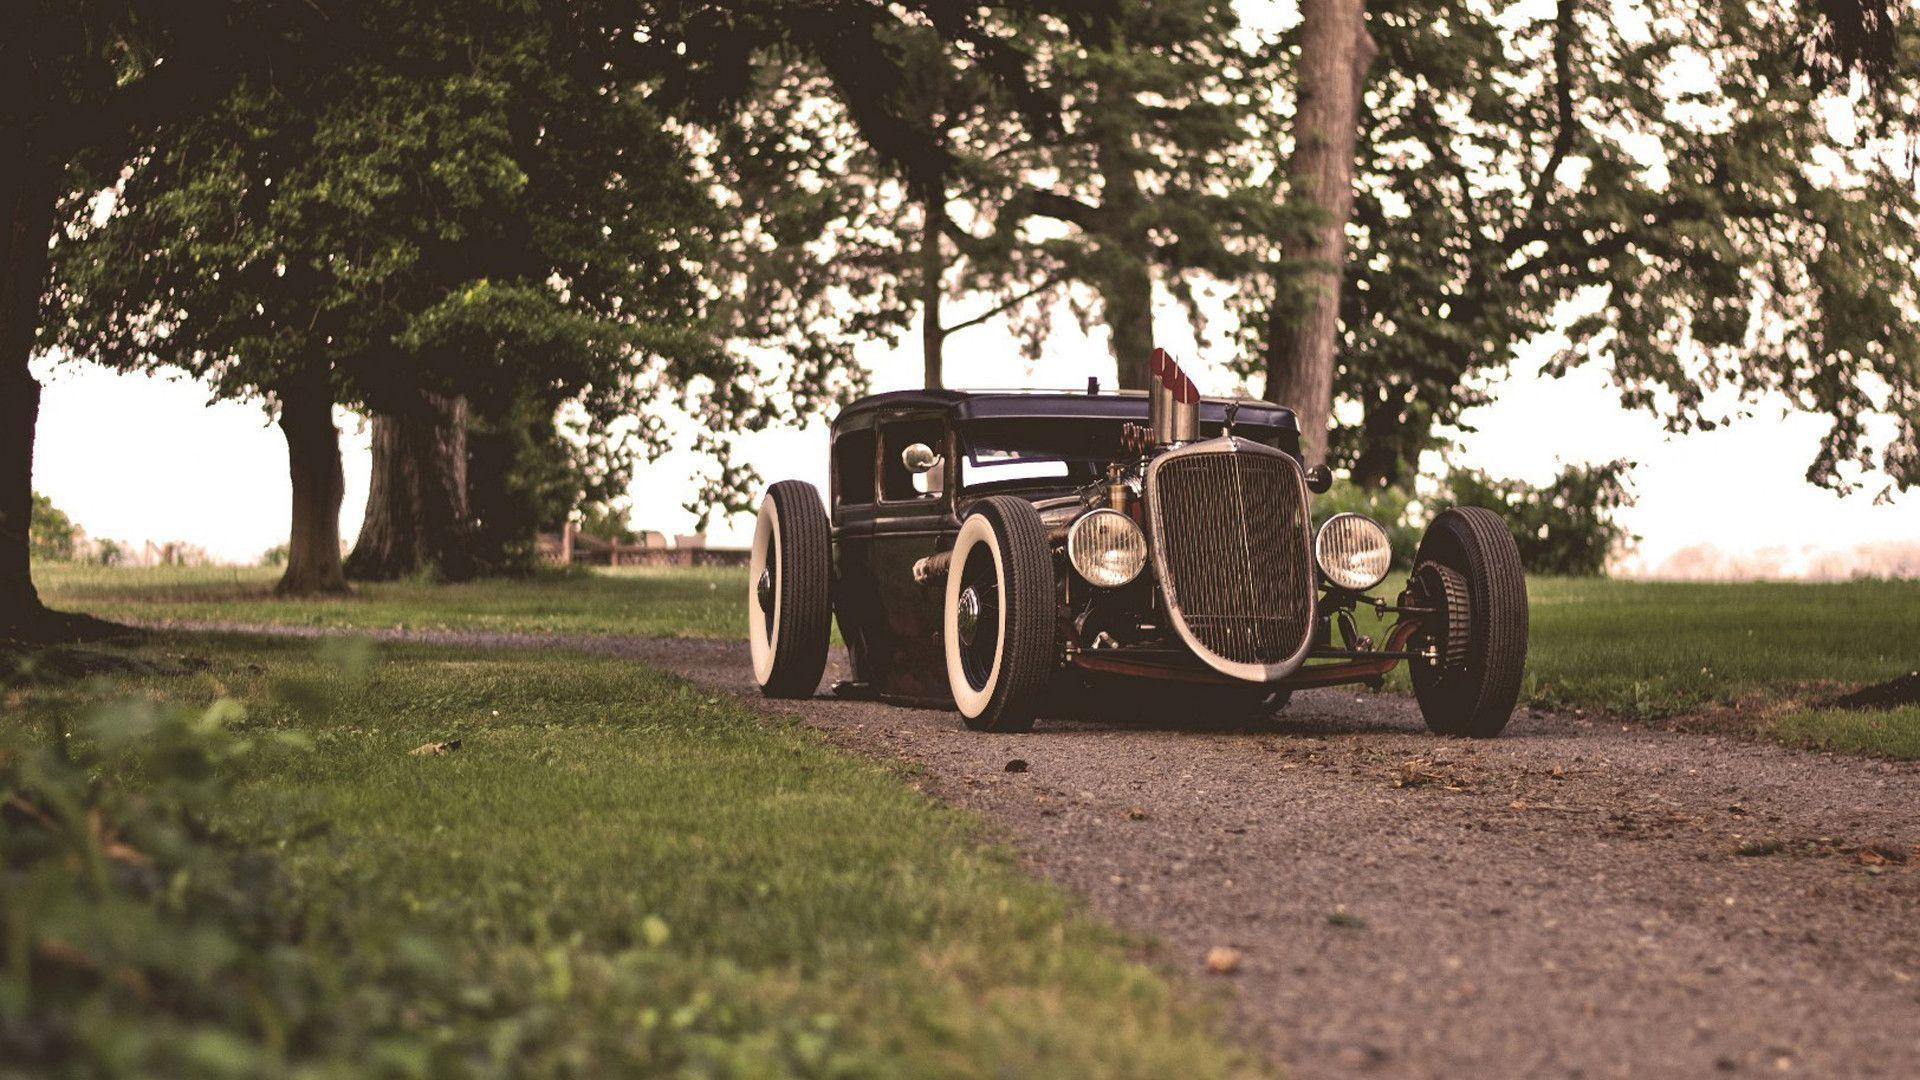 Wallpapers ford, hotroad, ratroad, rat, ford, hot rod, retrod